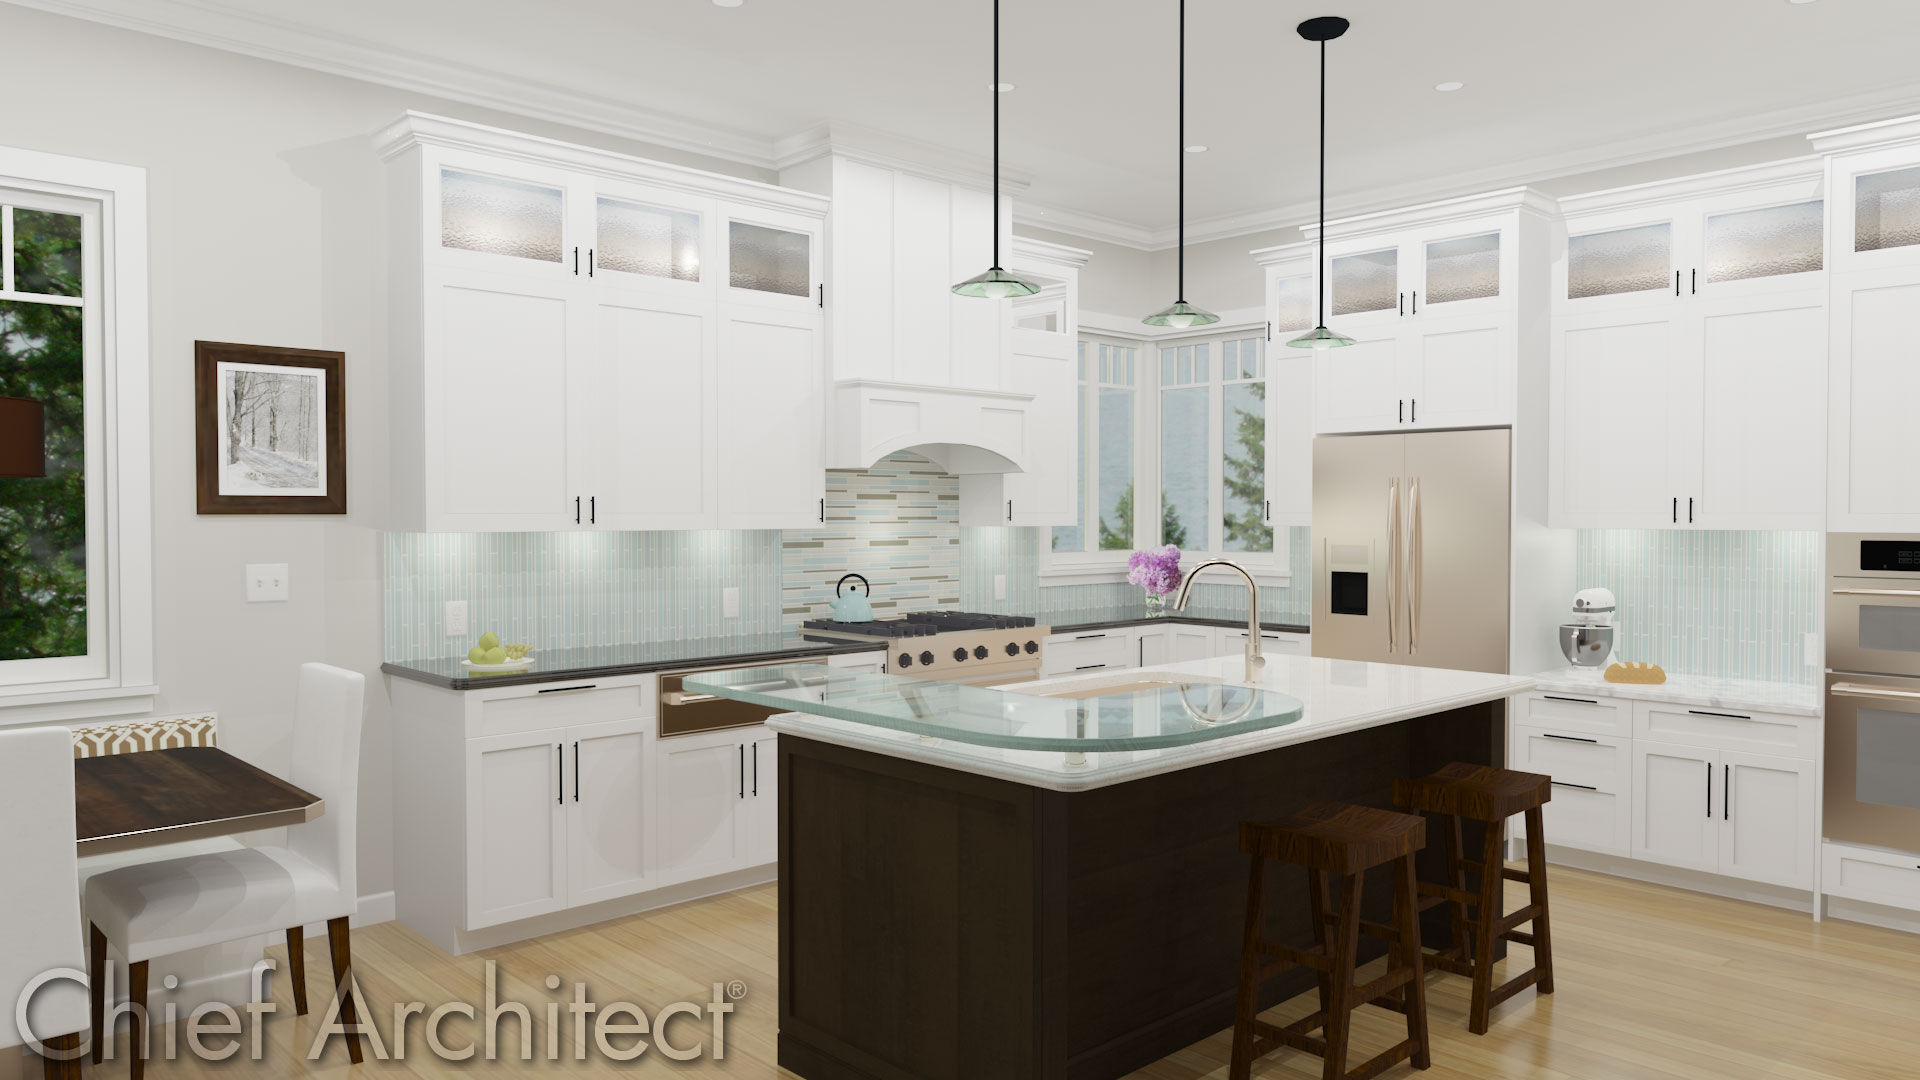 Chief architect home design software samples gallery for Kitchen samples